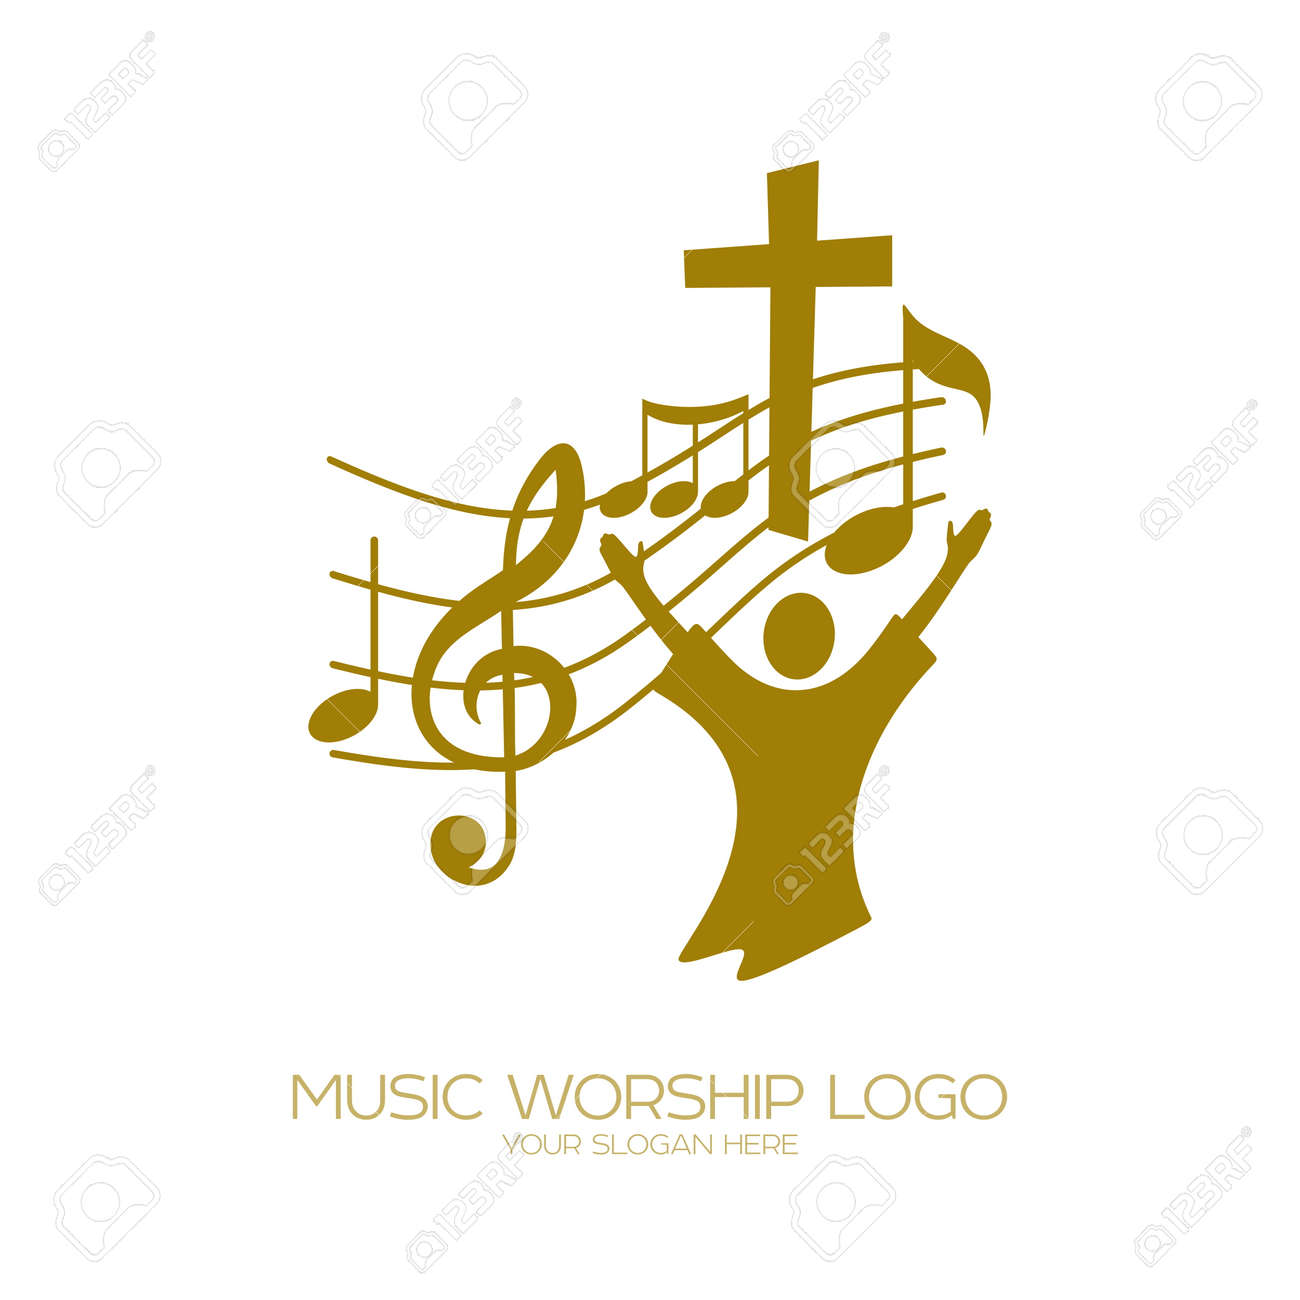 Music christian symbols the believer worships jesus christ music christian symbols the believer worships jesus christ sings the glory to god stock buycottarizona Image collections